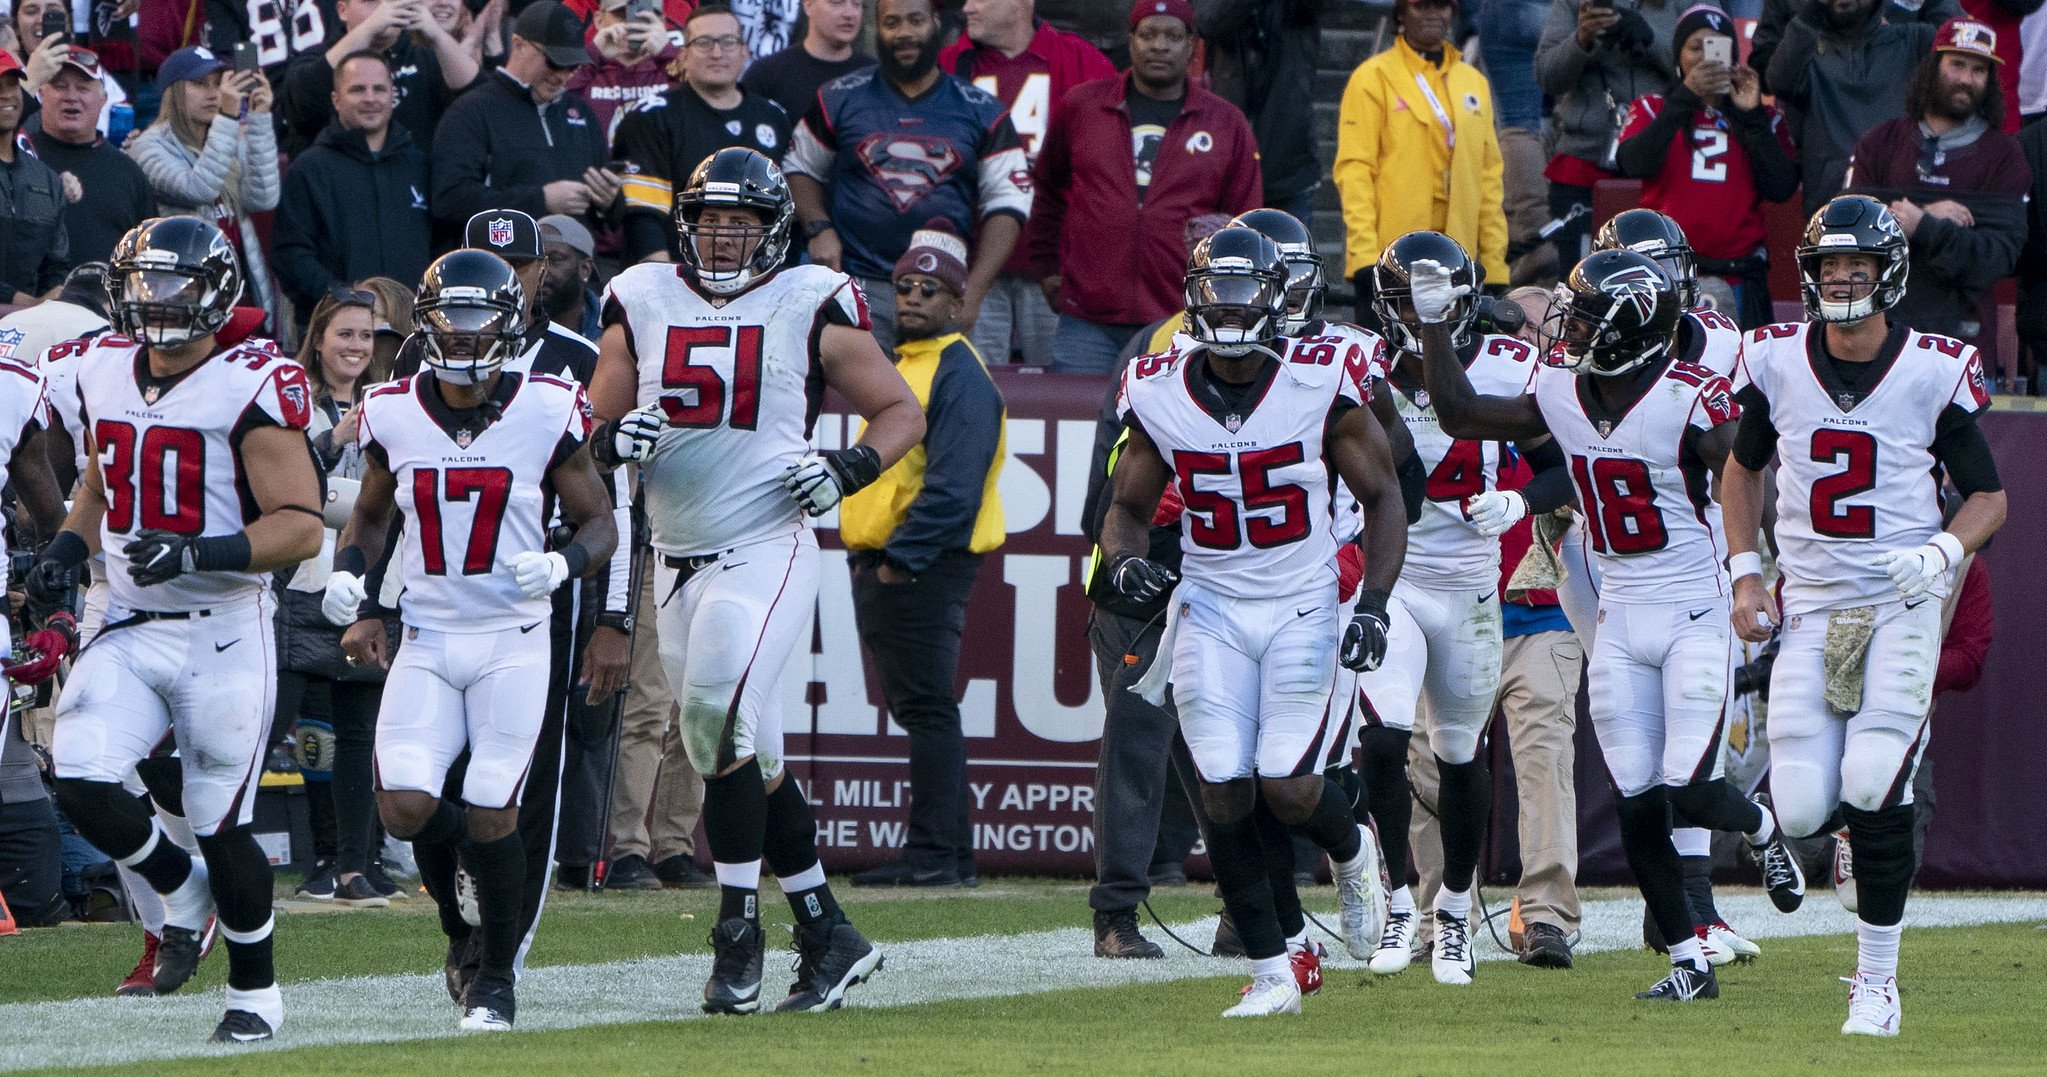 Members of the Atlanta Falcons on the field at FedExField on November 4, 2018 | Photo: Flickr/KA Sports Photos